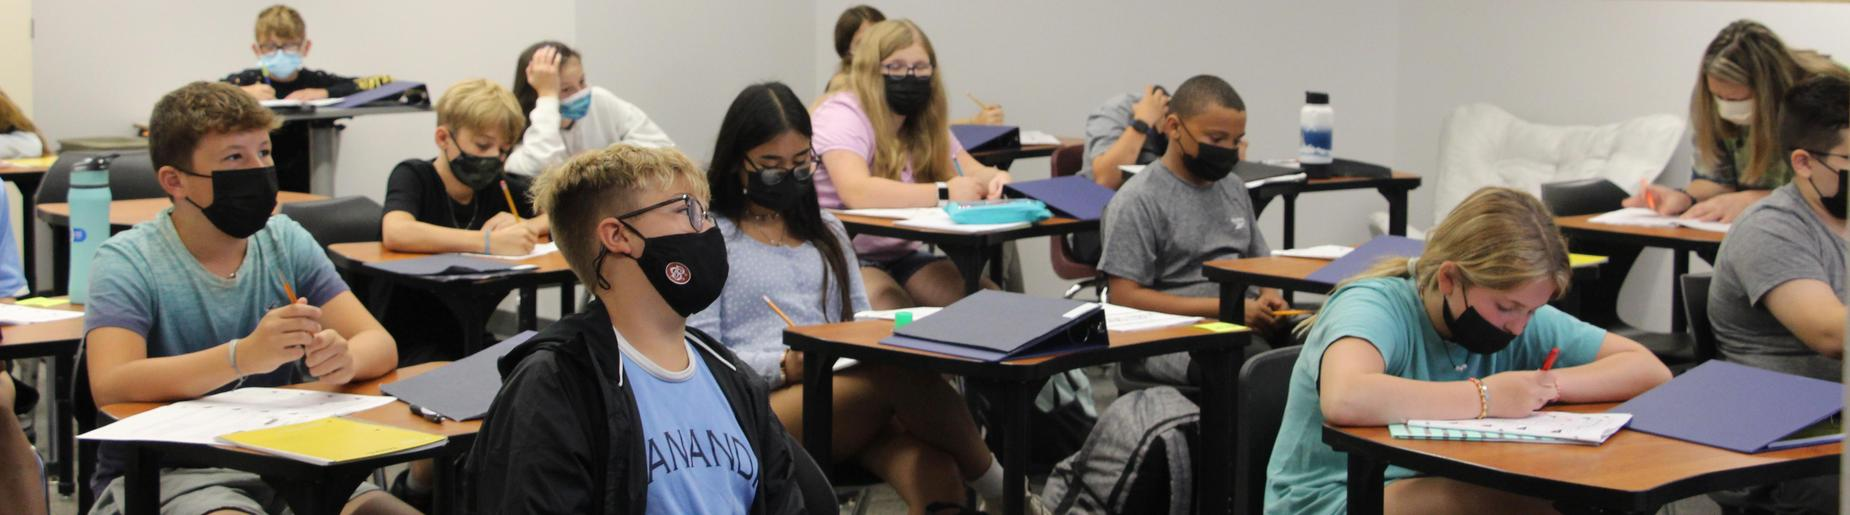 Gananda Middle School Students Learning In Class September 2021